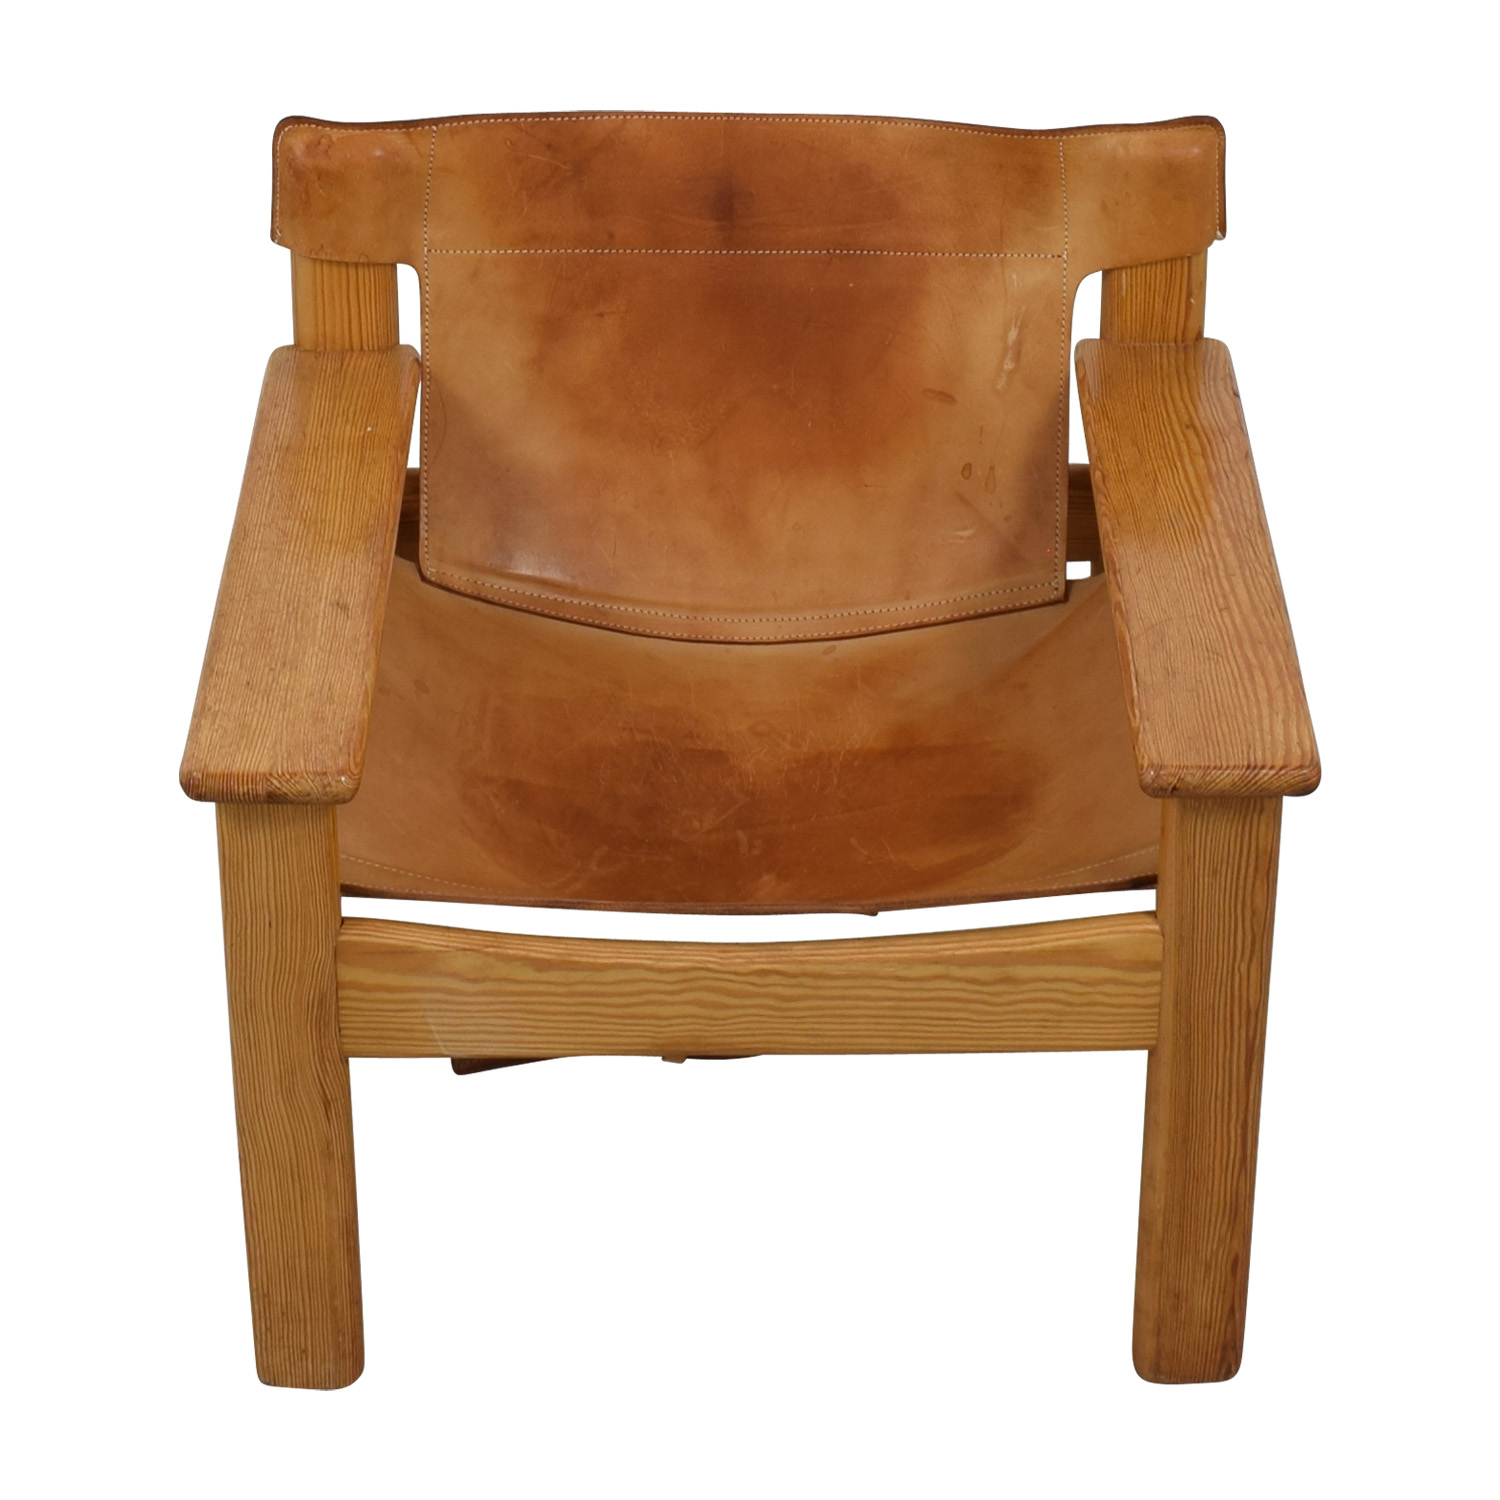 Vintage Cognac Leather Side Chair / Chairs